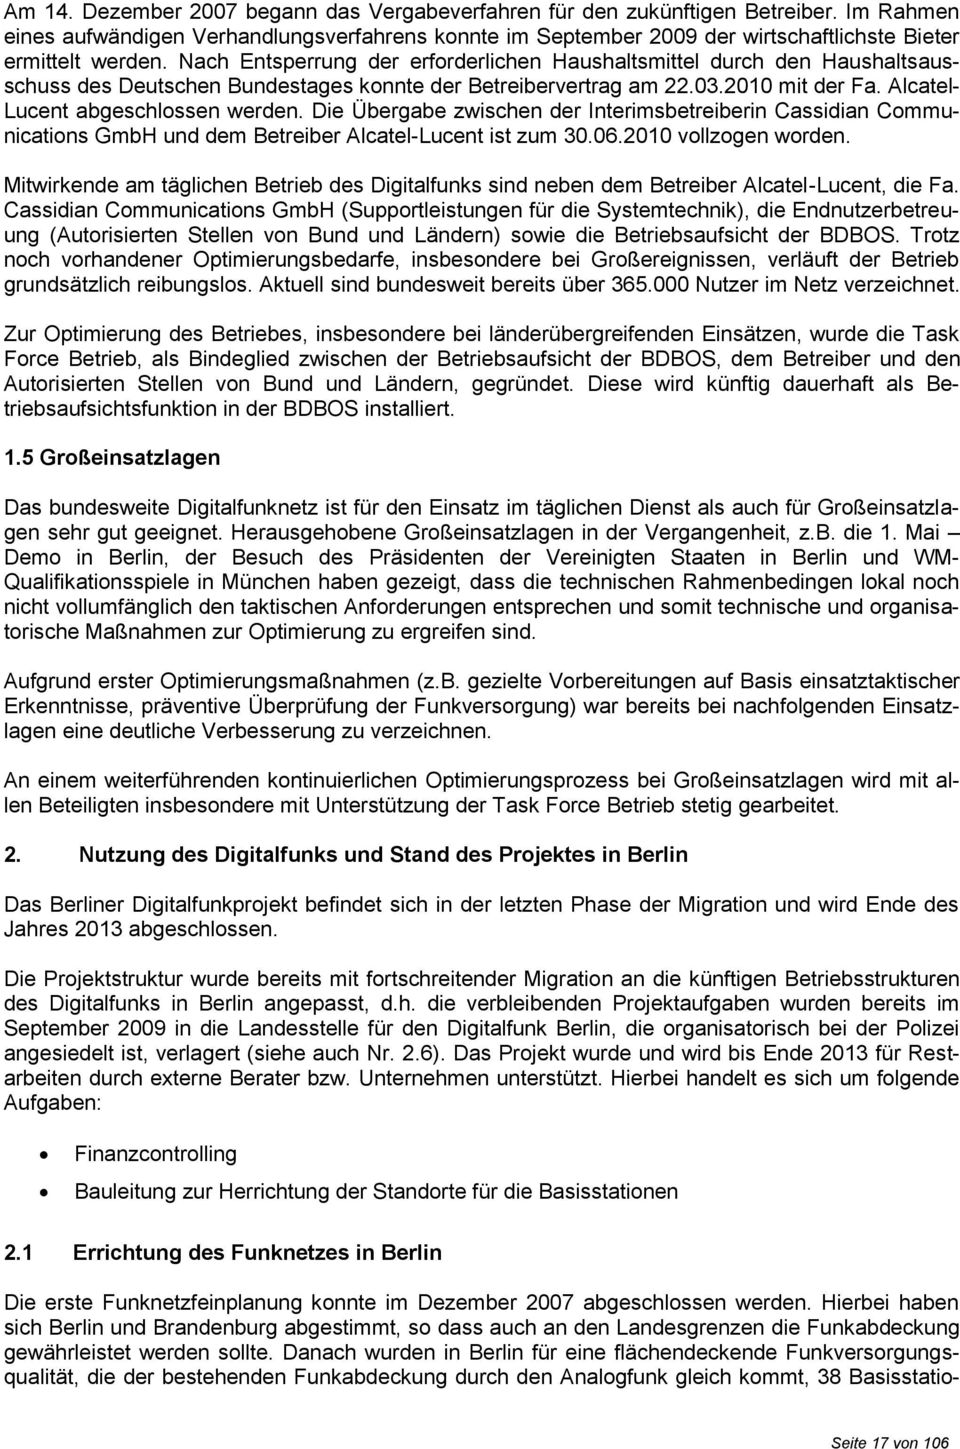 Beste Format Der Grundwiederholung Ideen - Entry Level Resume ...